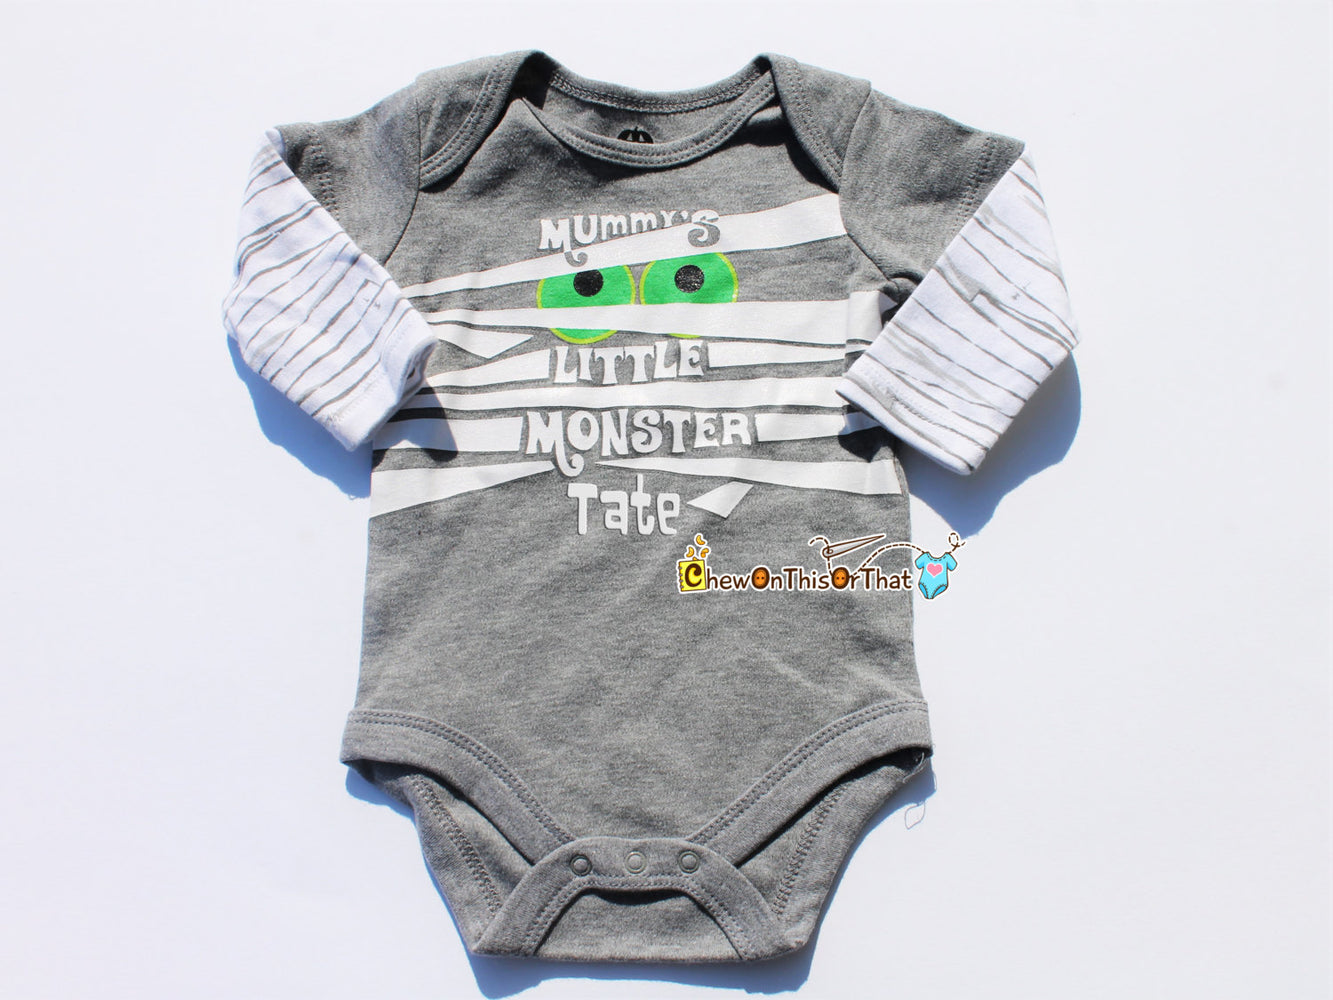 Mummy's Little Monster - First Halloween Statement Onesie, Personalized with Baby's Bodysuit, Shirt, Top, Costume - Chew On This Or That